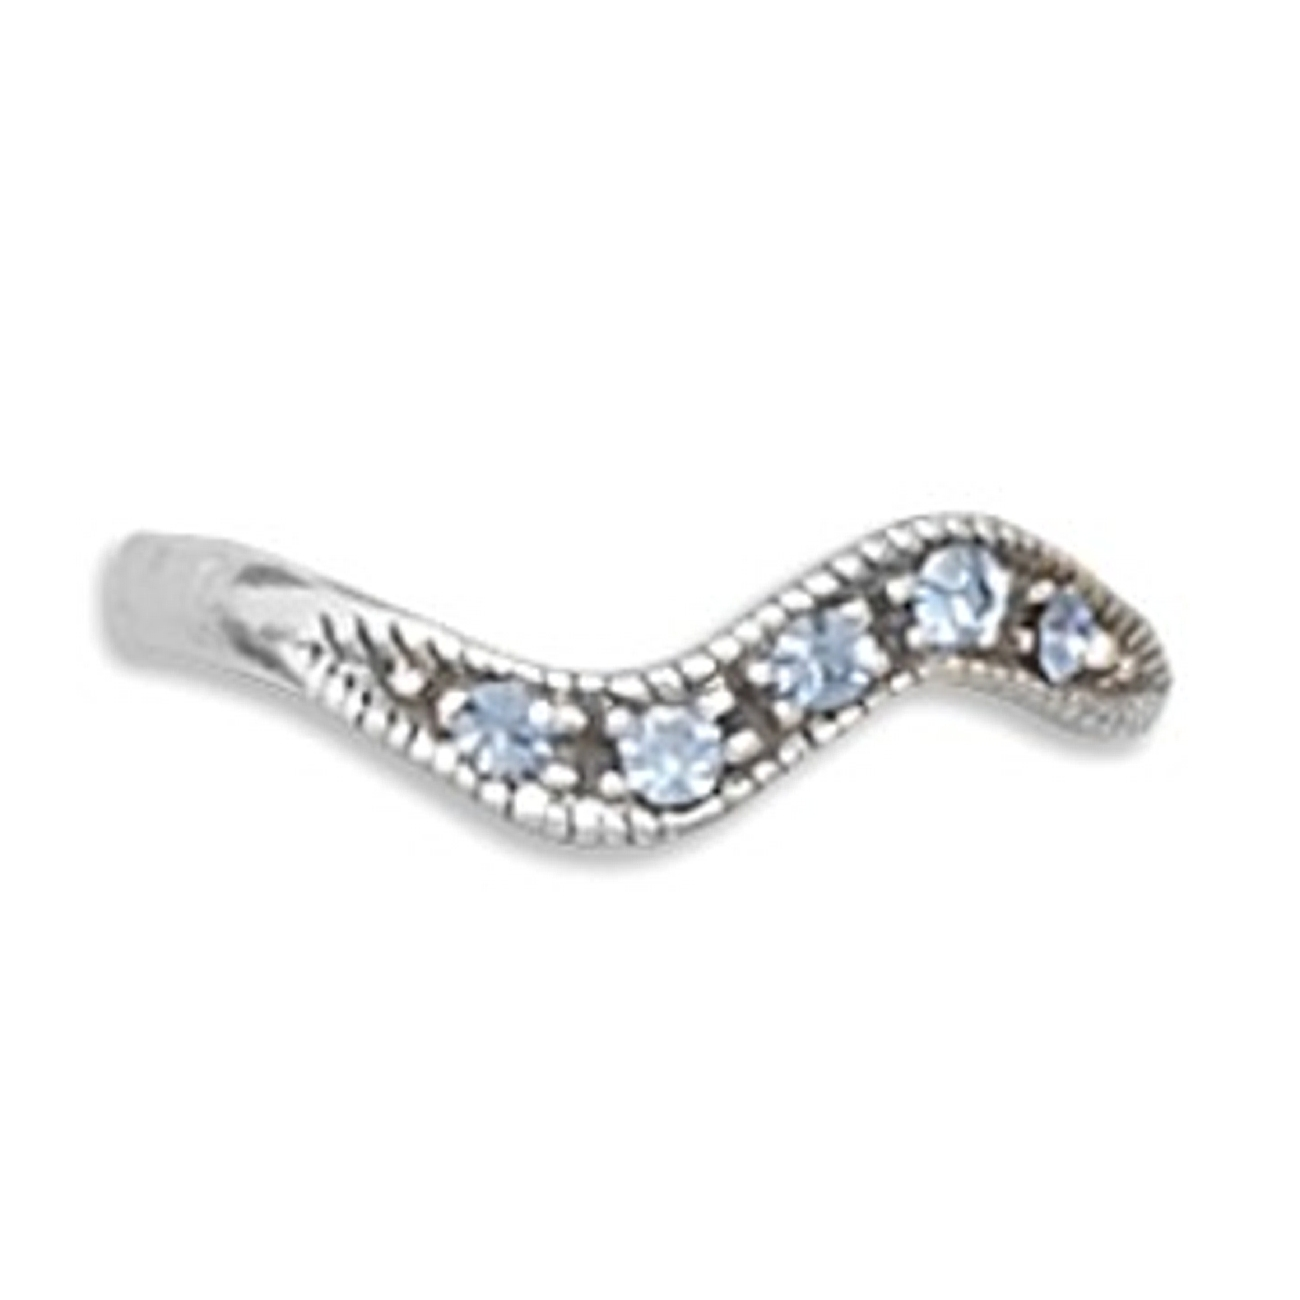 Blue Crystal Wave Band Adjustable Toe Ring